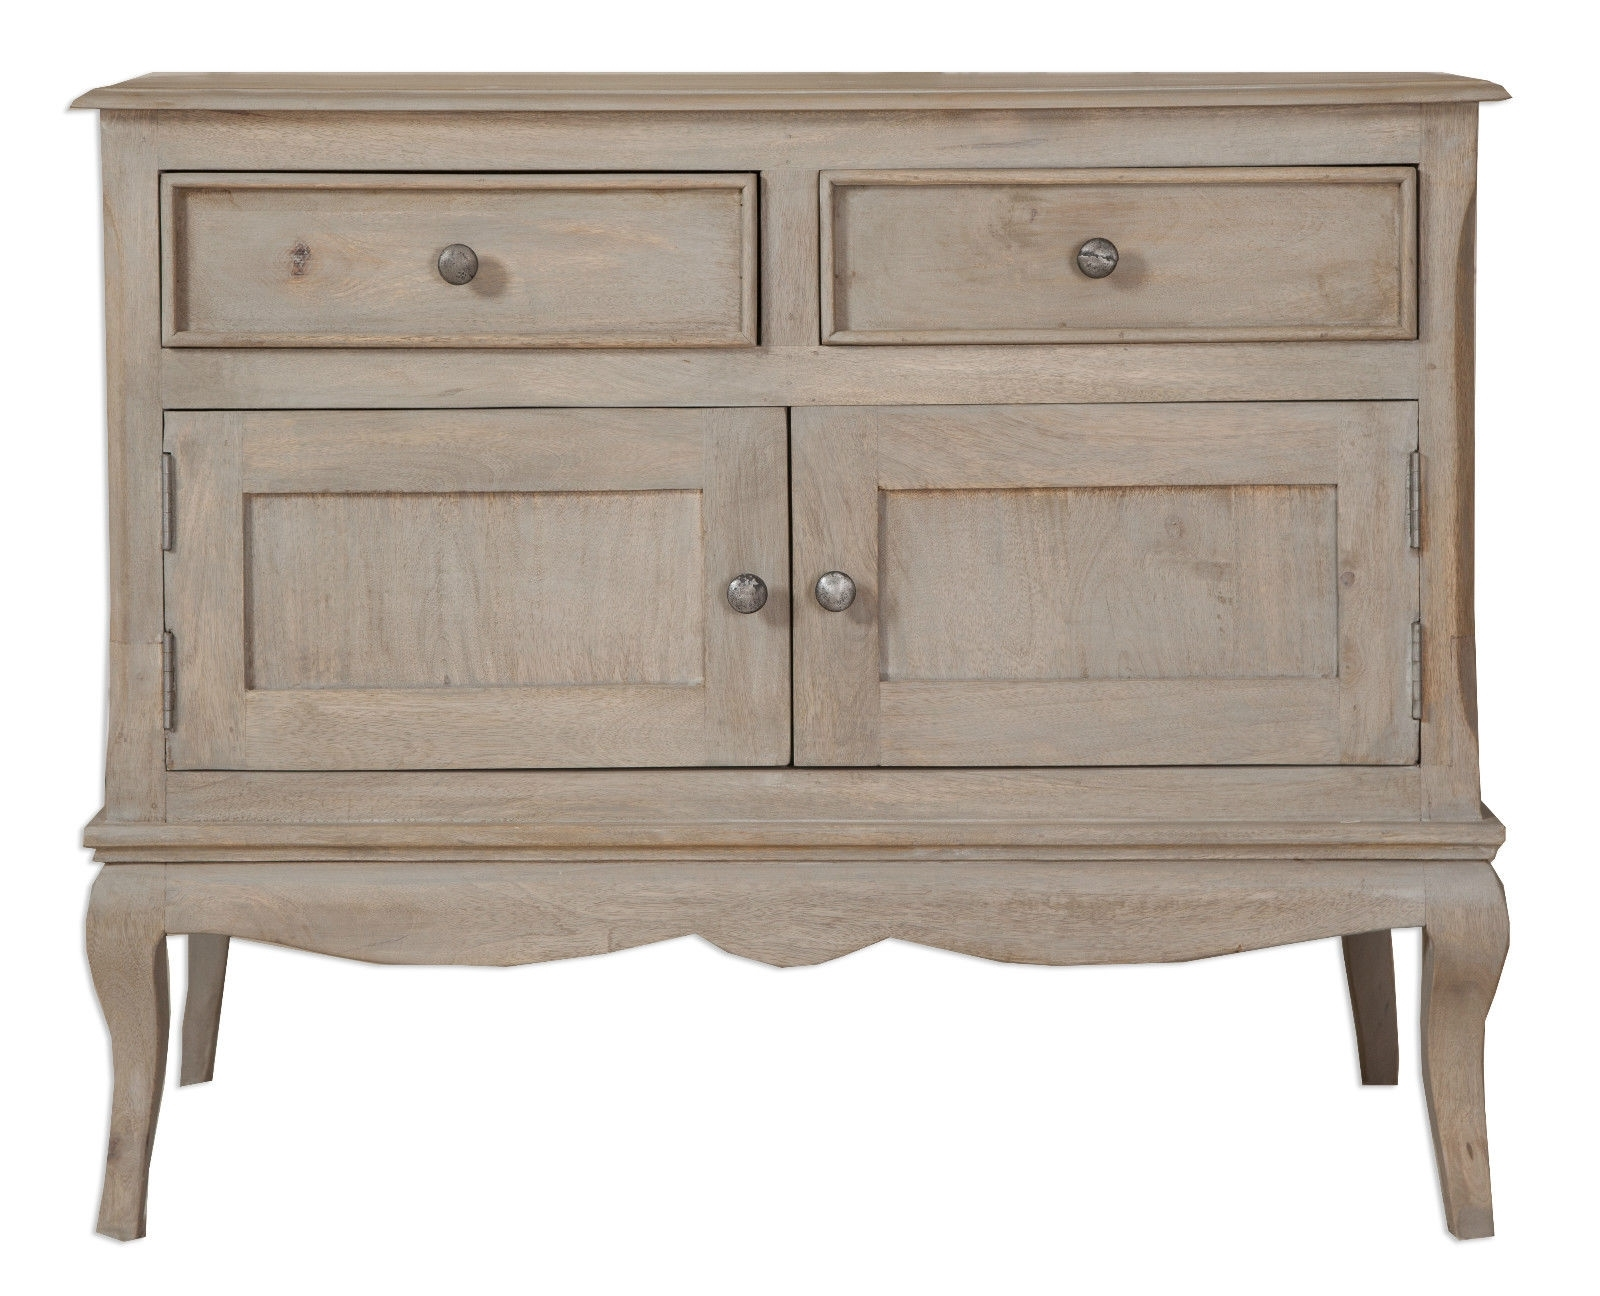 Loire French Grey Solid Mango Wood 2 Door / 2 Drawer Sideboard with Mango Wood 2-Door/2-Drawer Sideboards (Image 17 of 30)